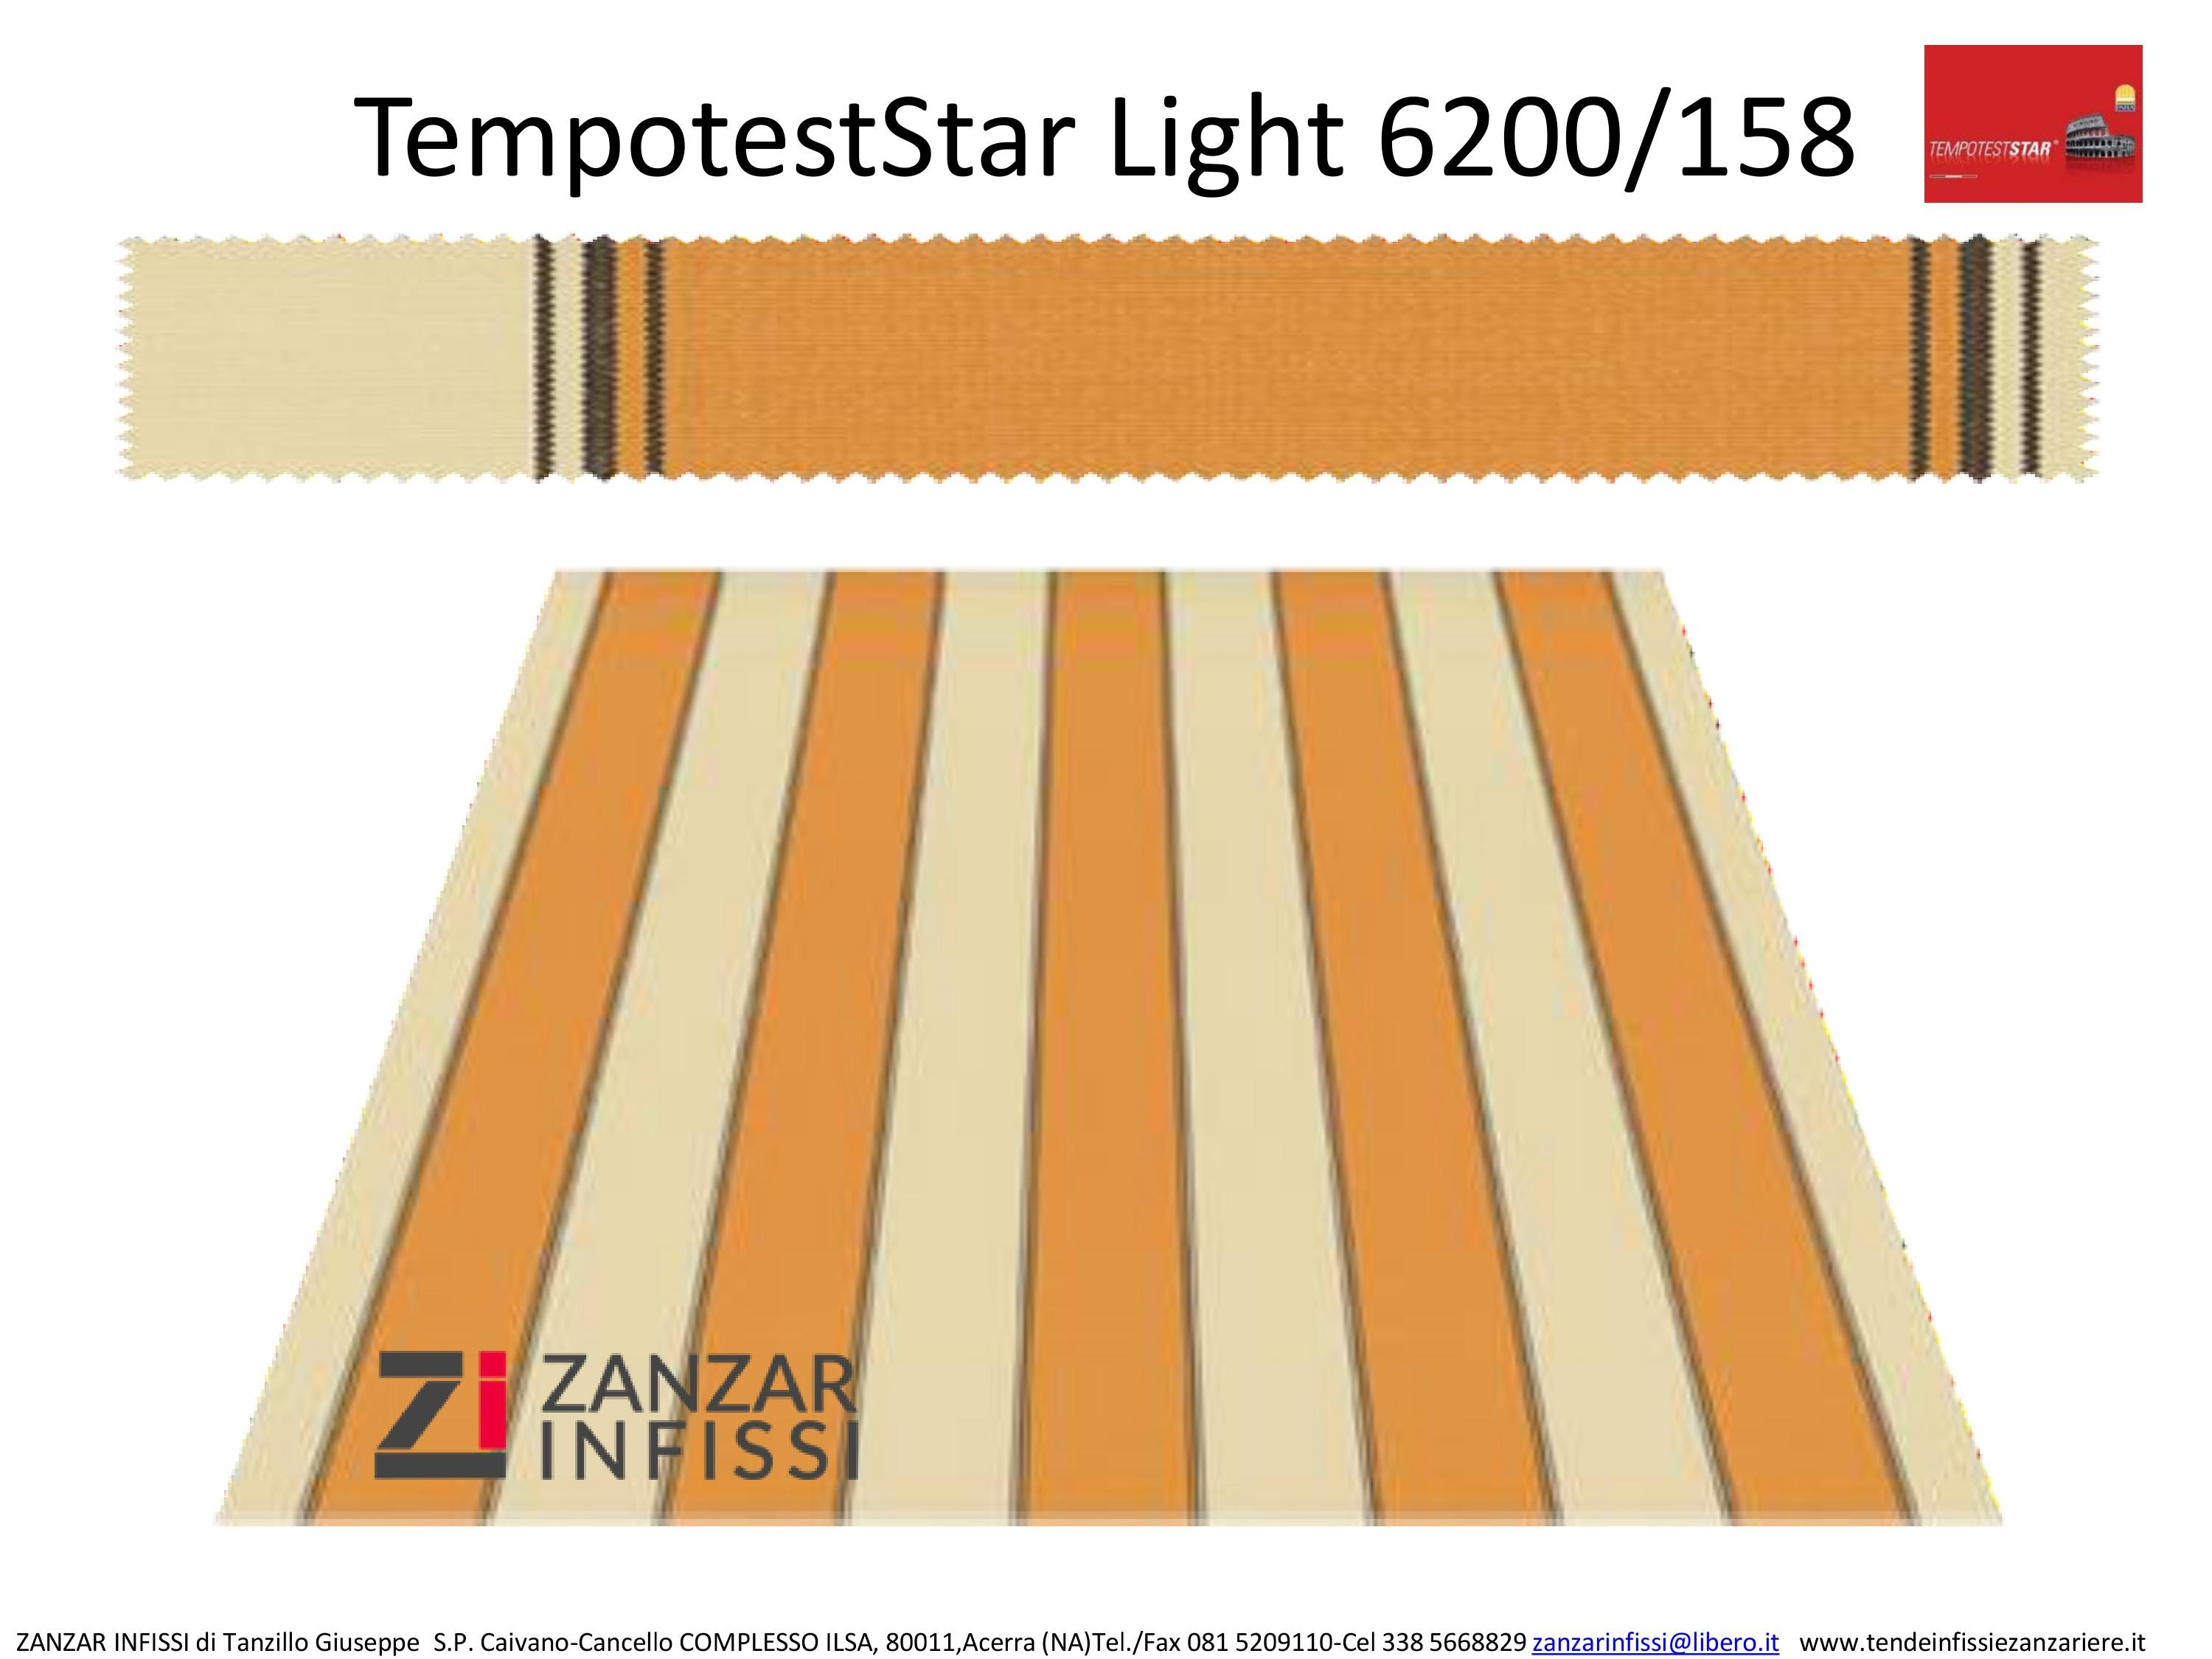 Tempotest star light 6200/158